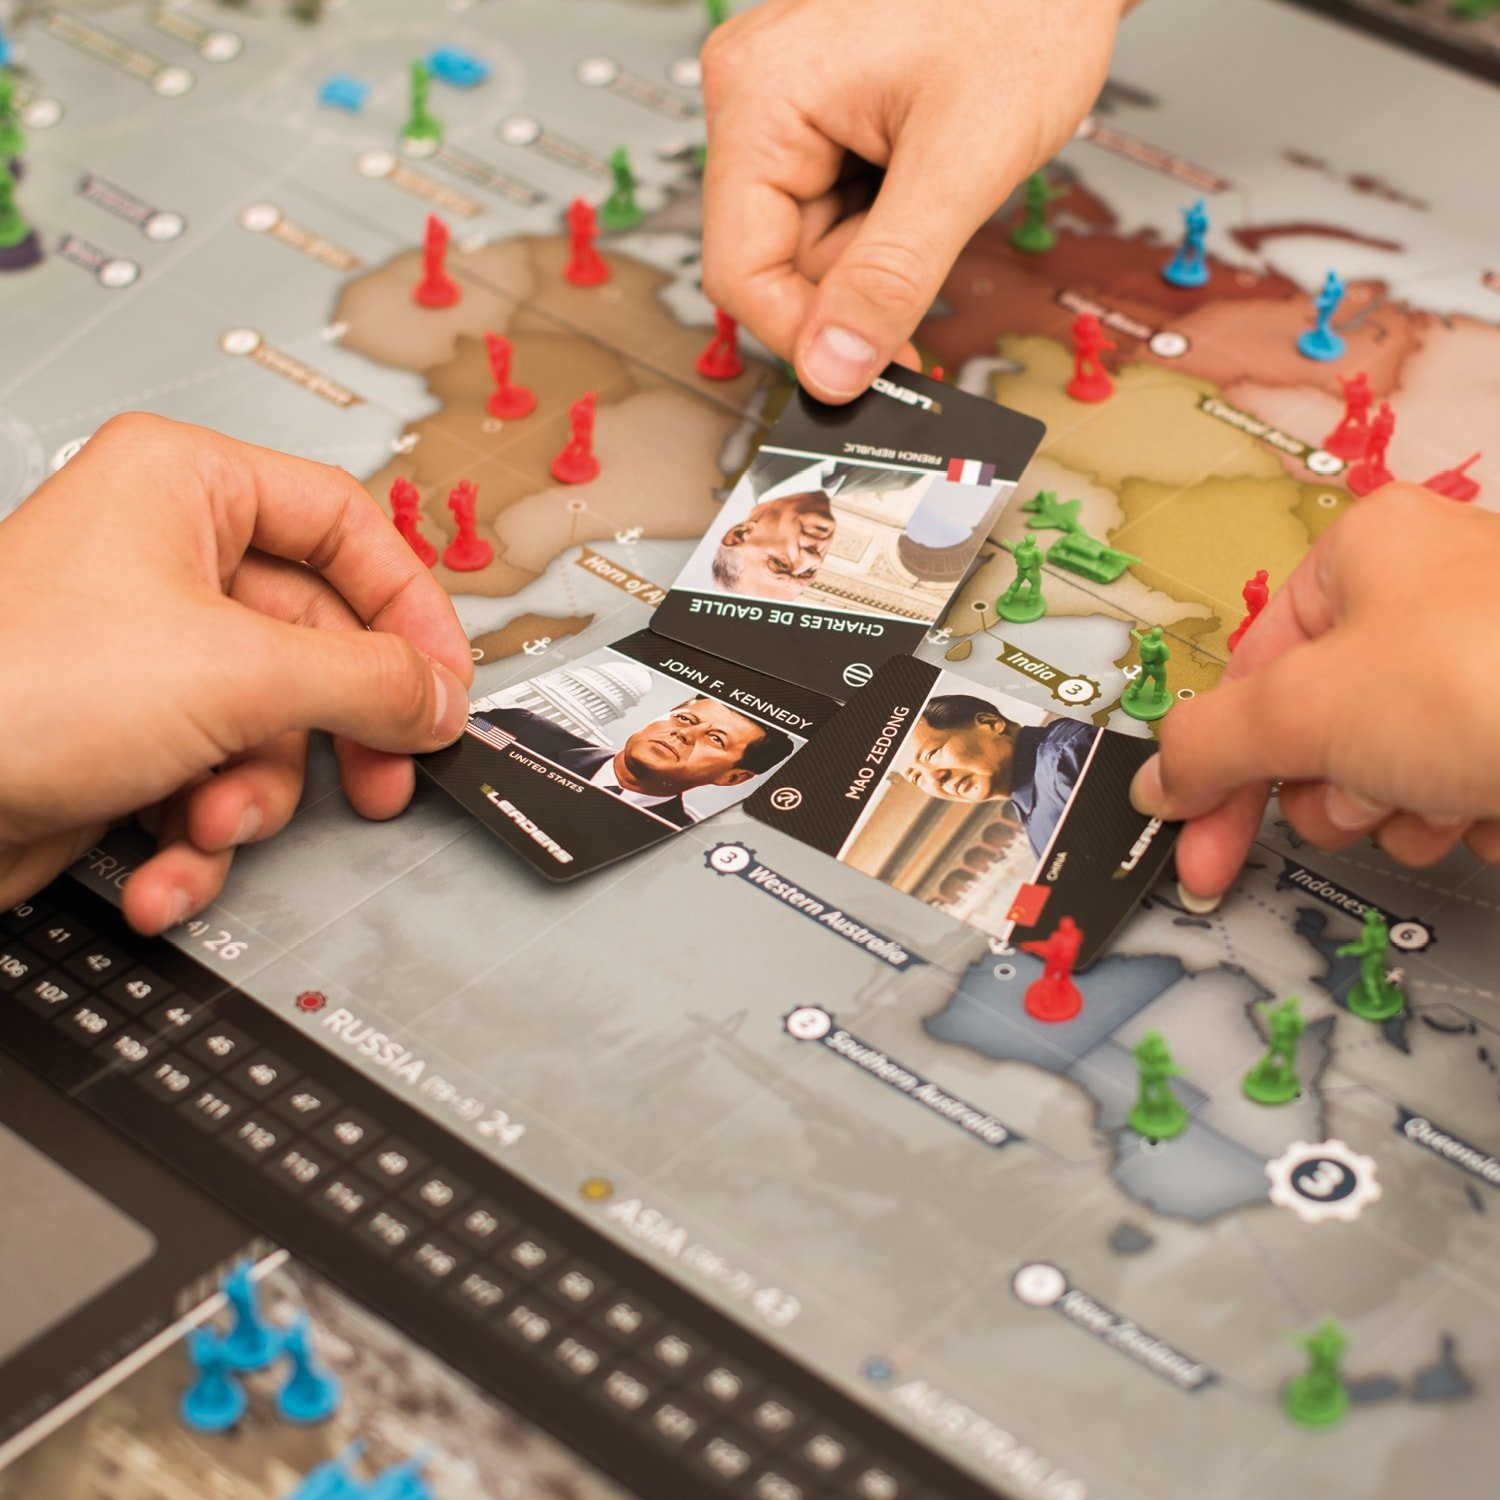 Rudy Games - Leaders 2019 - Interactive Cold War Strategy Board Game with App - for Children 10 Years and Up and Adults by Rudy Games (Image #4)